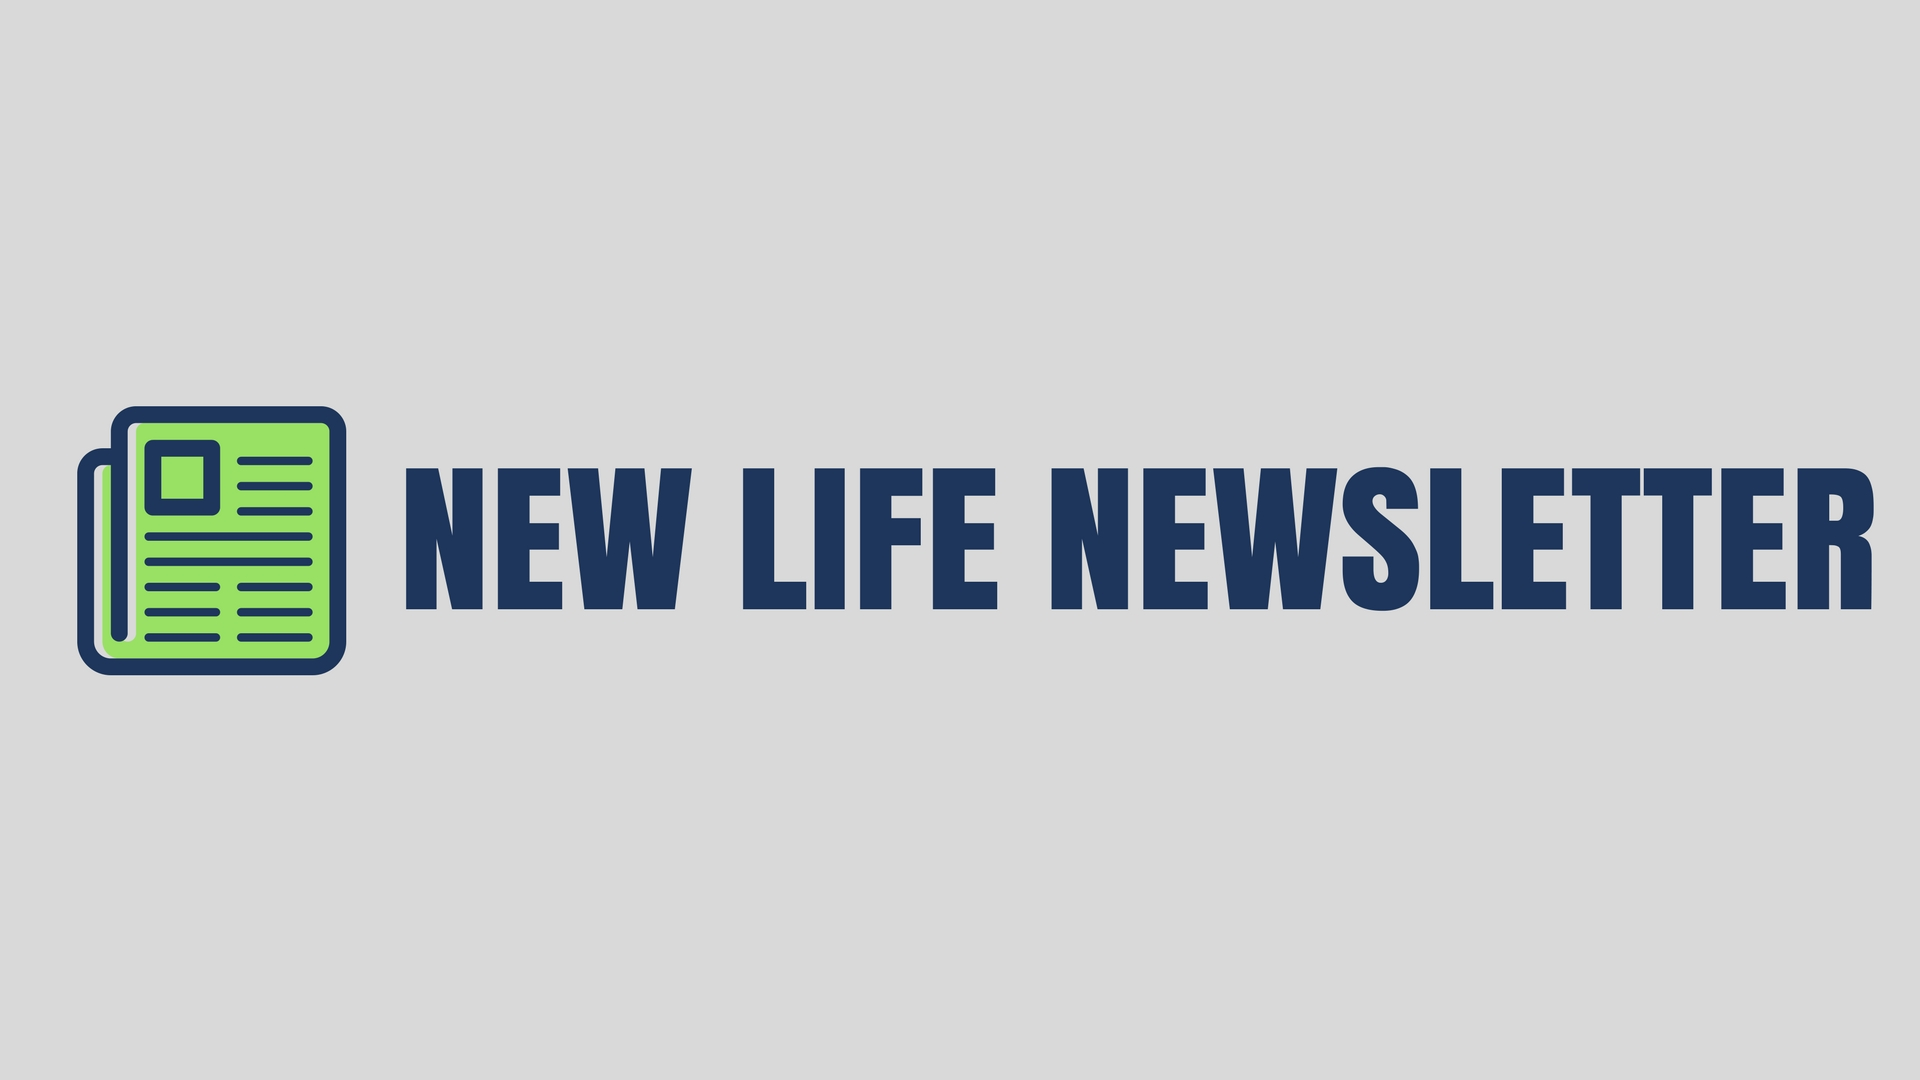 NEW-LIFE-NEWSLETTER-wide